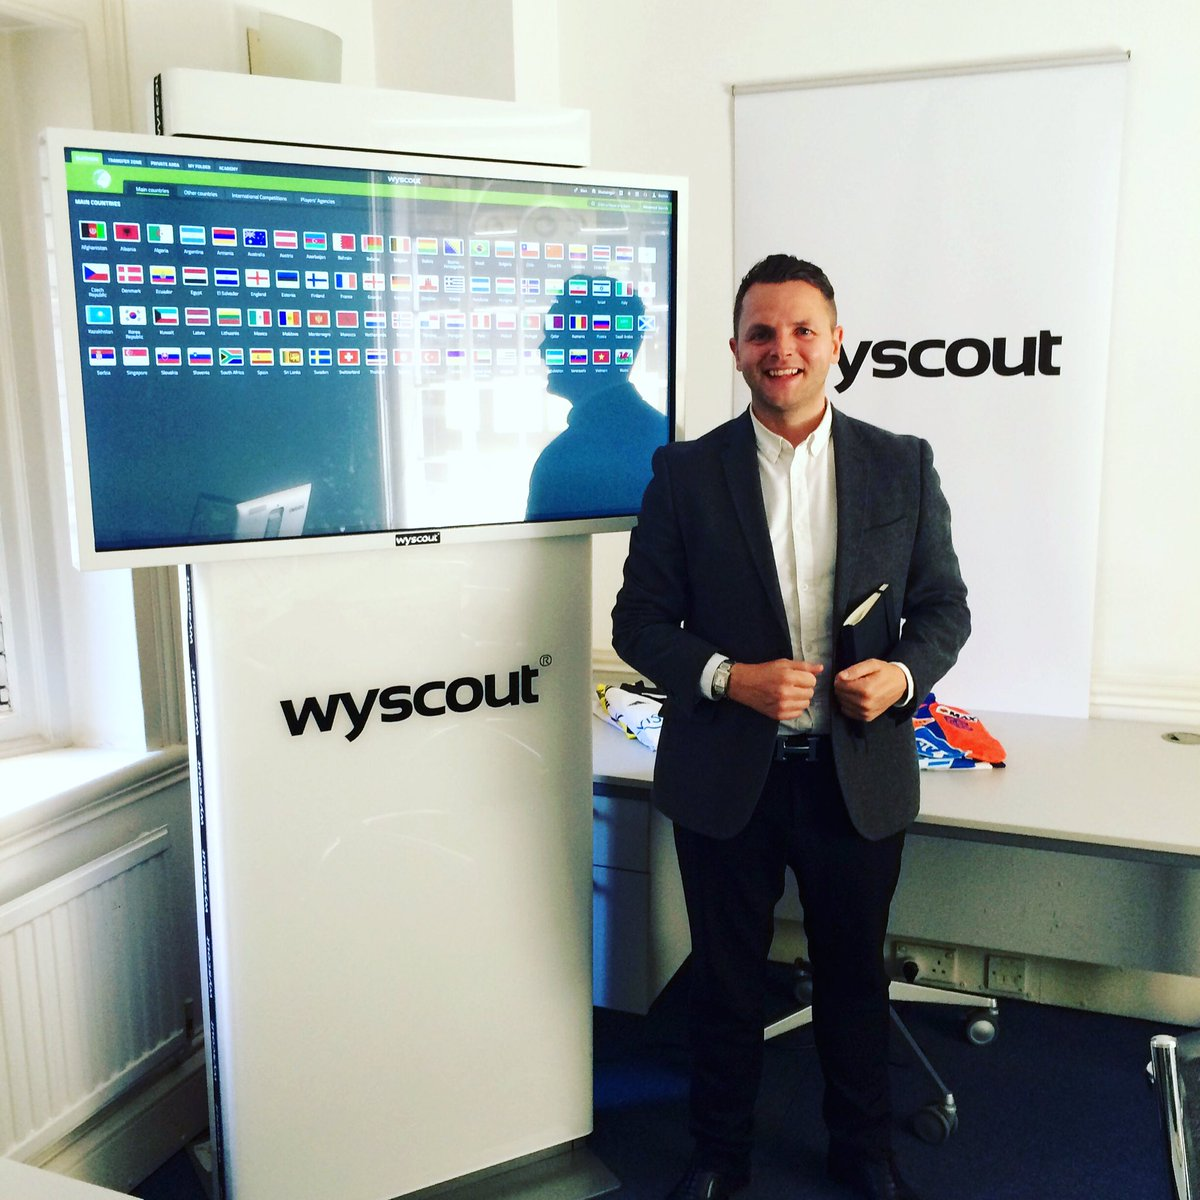 Nice morning spent in London at the @Wyscout offices, great  Italian coffee too ☕️🇮🇹 #graziemille https://t.co/NP0zxQBznc